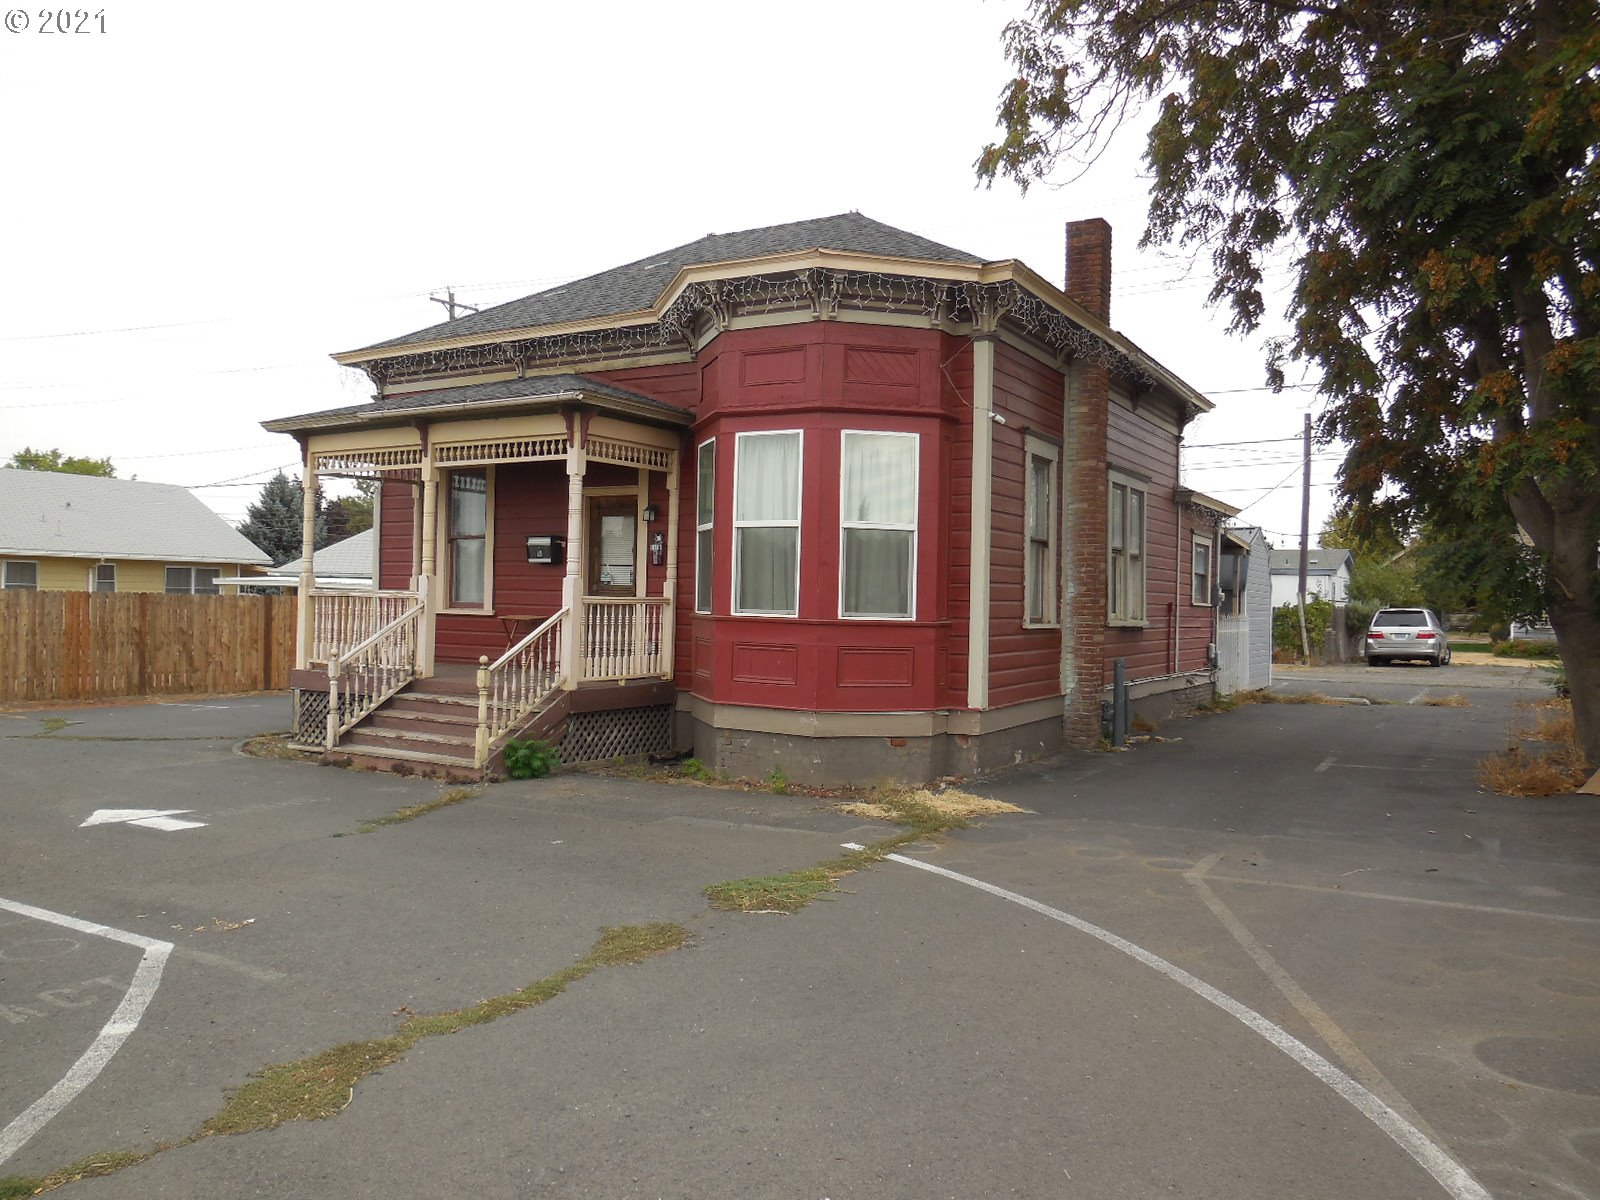 311 S MAIN ST, Milton-freewater OR 97862